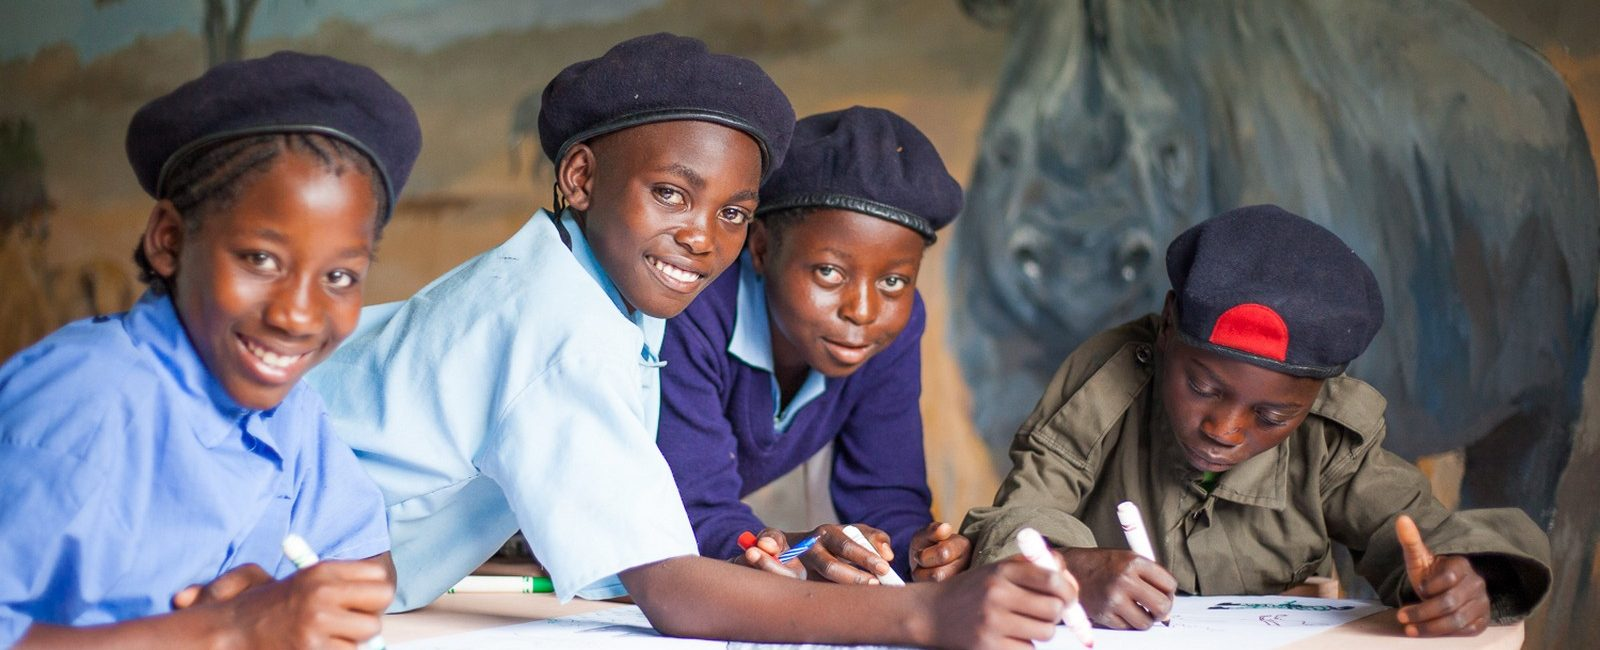 Children in Zambia learn about wildlife and are inspired to love rhino. Credit: Tristan Vince